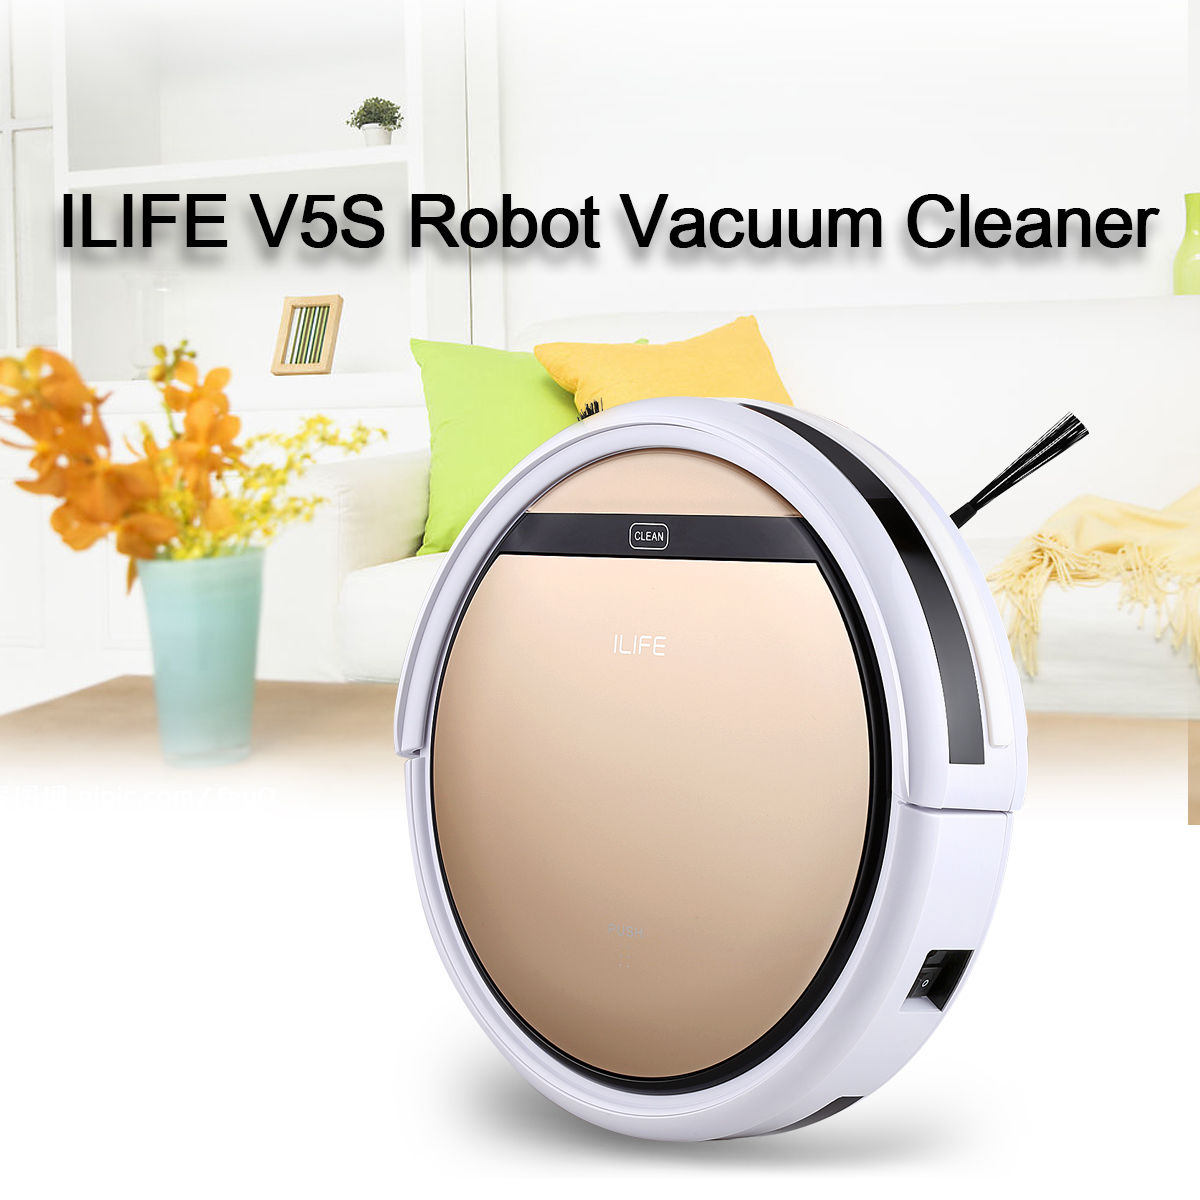 New High Performance Smart Rechargeable vacuum cleaner on Sale Cleaning Robot Floor Sweeper Home Cleaning Automatic Microfiber ILIFEV5S Rose Gold